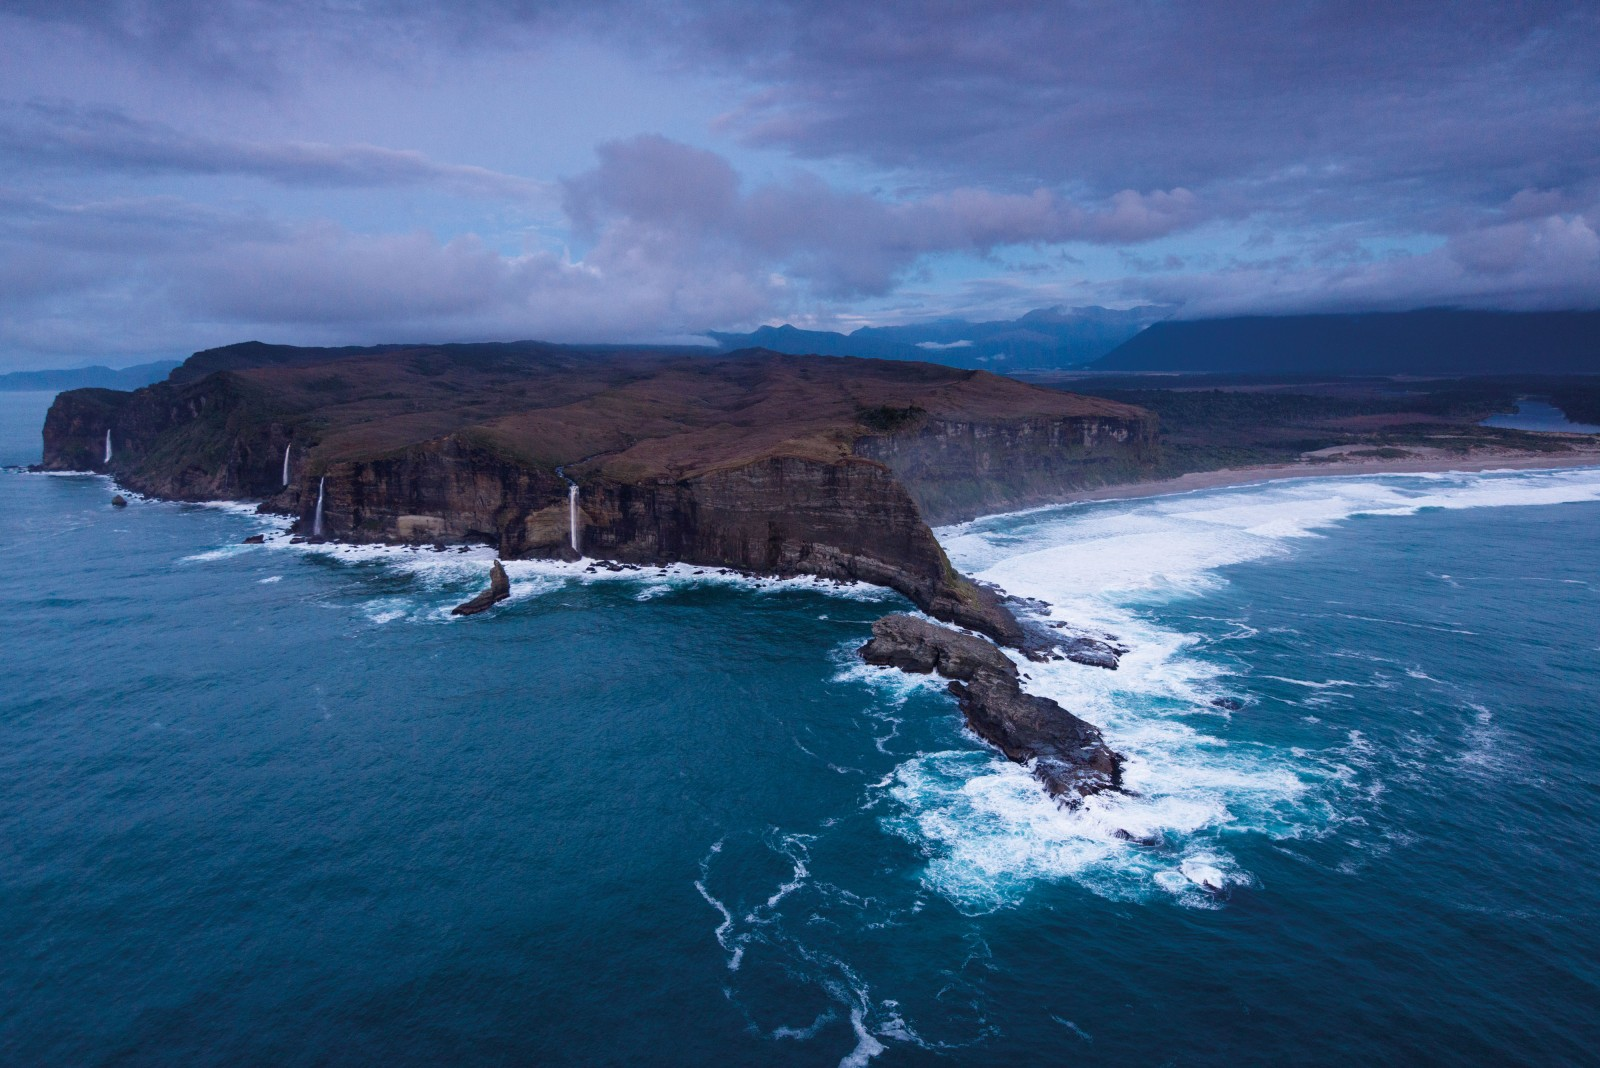 With nowhere left to flow, the brimming Dougal, Donald, Duncan and Whiskey Creeks plummet over Cascade Point into the sea south of Jackson Bay, their names recalling the Shetland Islanders who came here seeking gold in 1860.